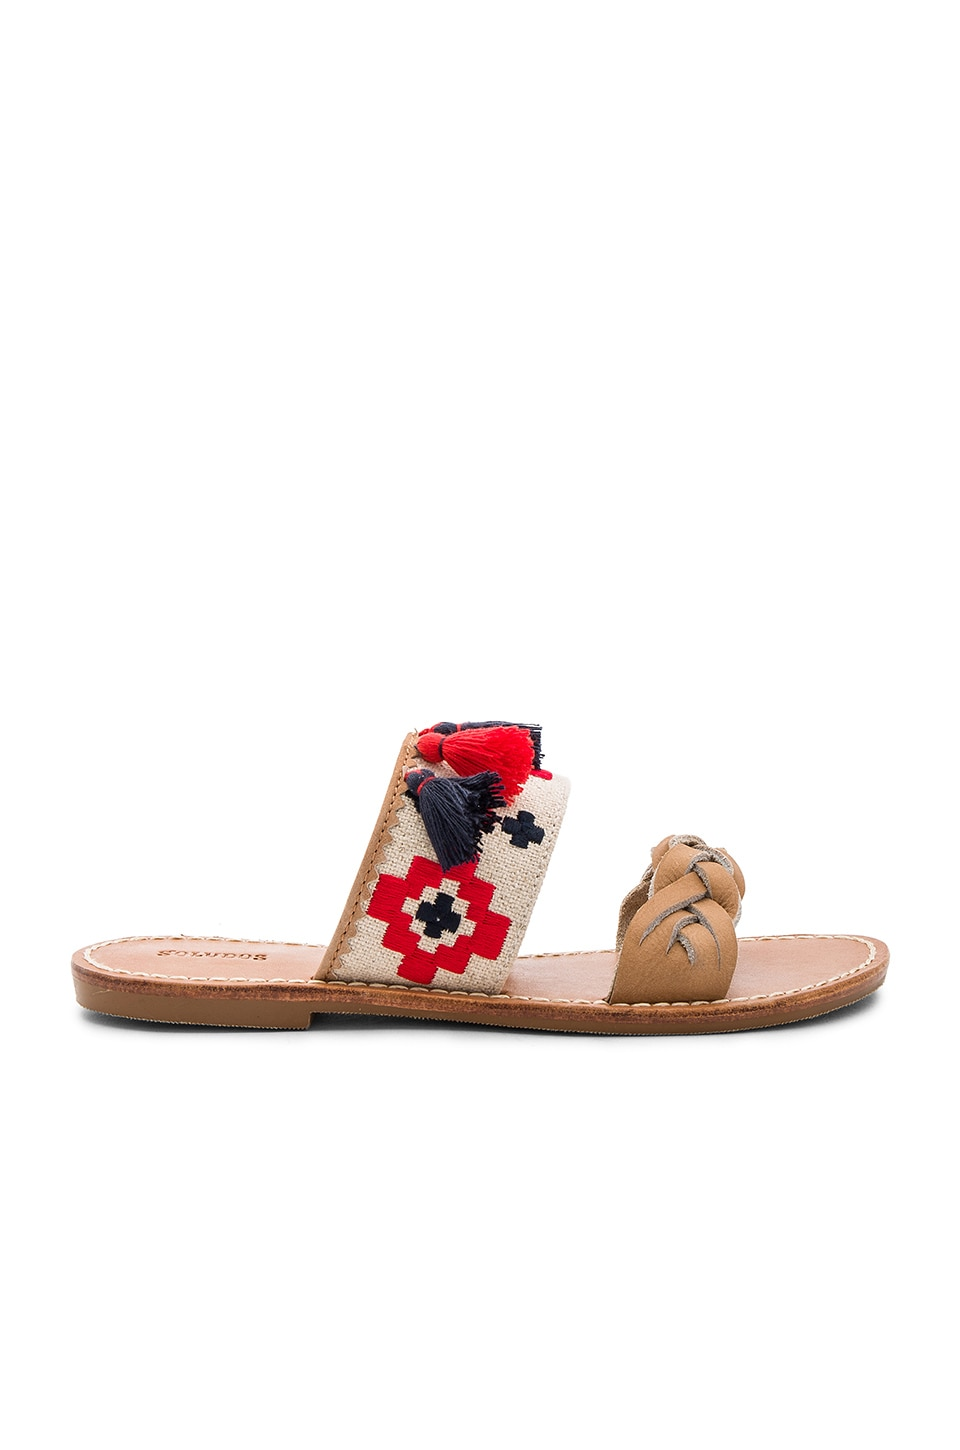 Embroidered Slide Sandal